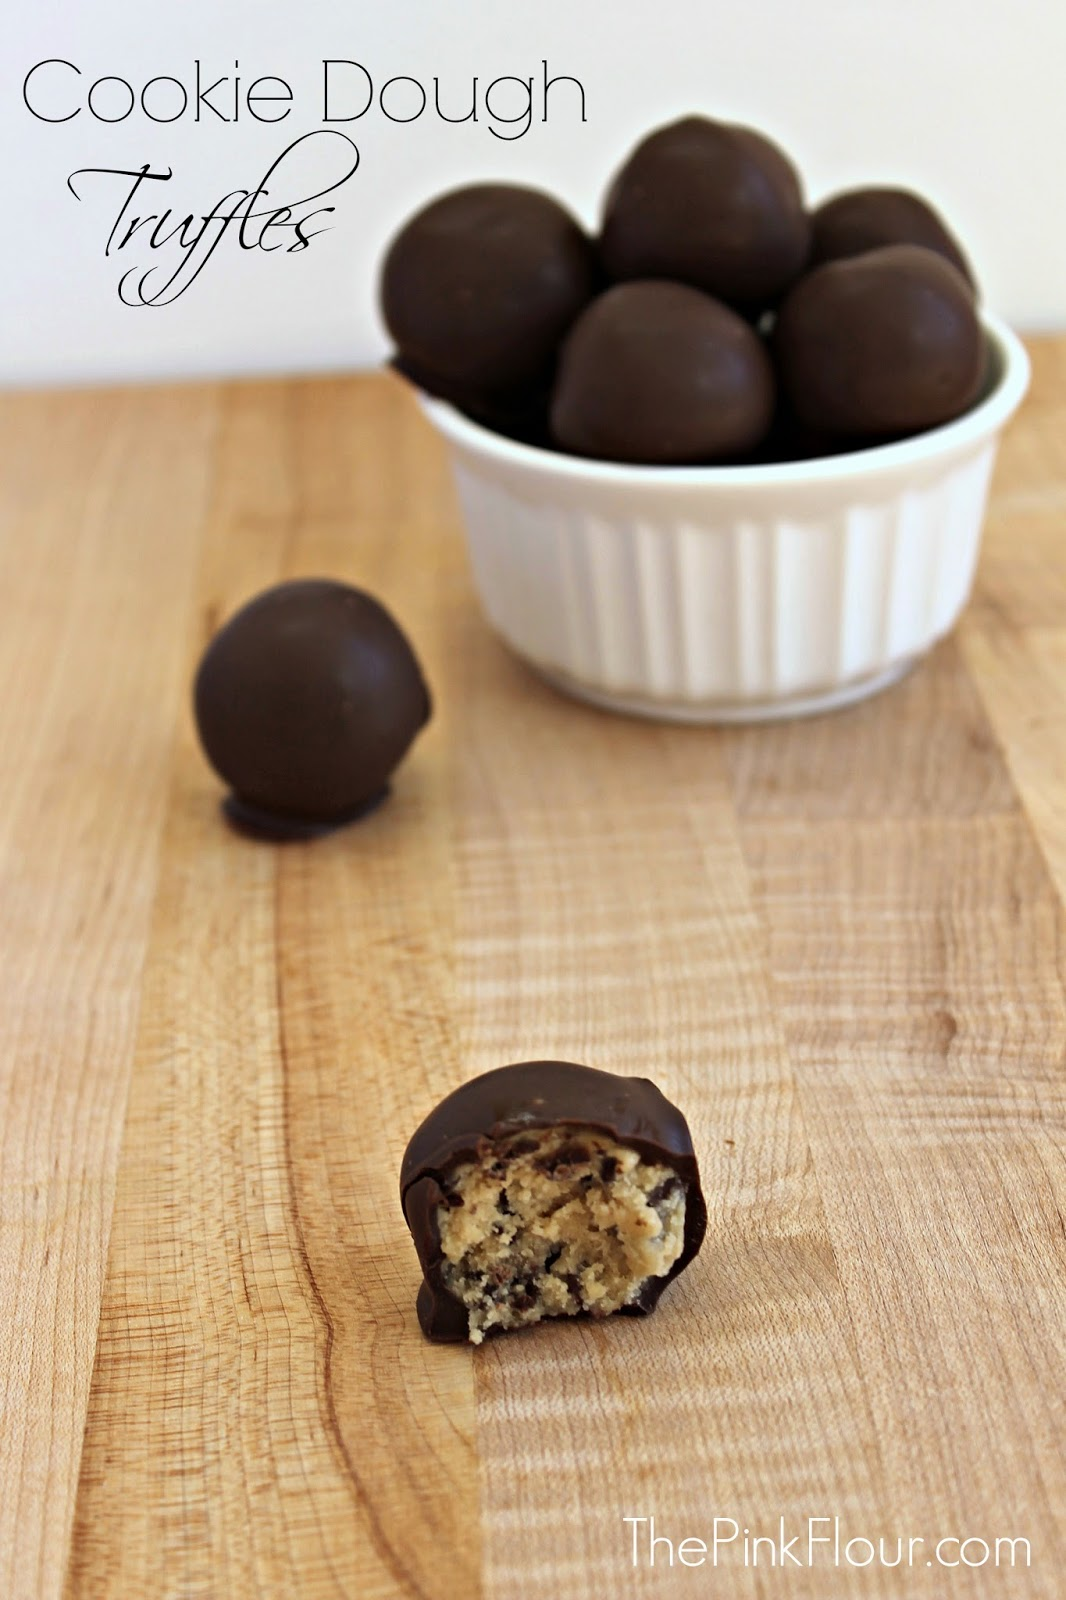 Cookie Dough Truffles - a quick and easy no-bake dessert that help you get your cookie dough fix without the eggs www.thepinkflour.com #cookie #dough #truffles #chocolate #dessert